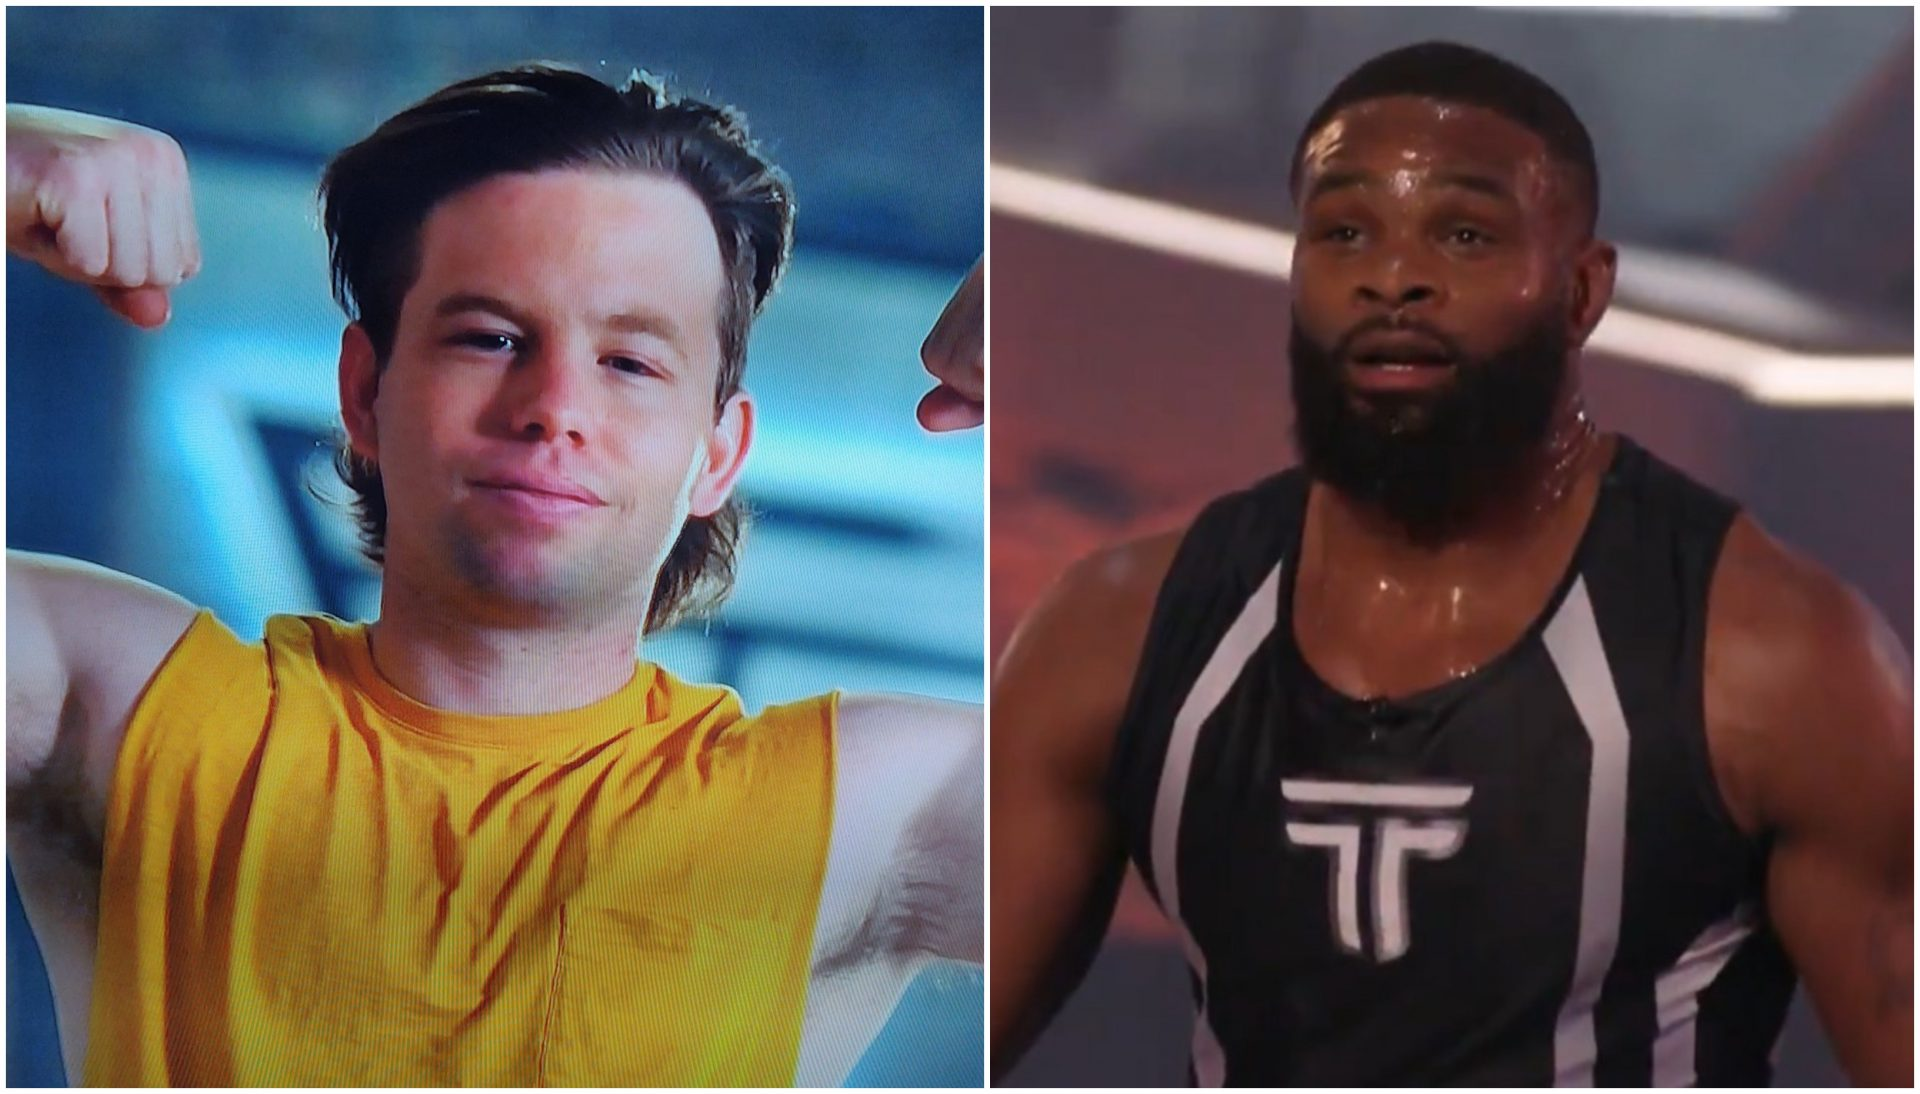 Watch: Tyron Woodley falls short in the Titan Games against a teacher! - Tyron Woodley